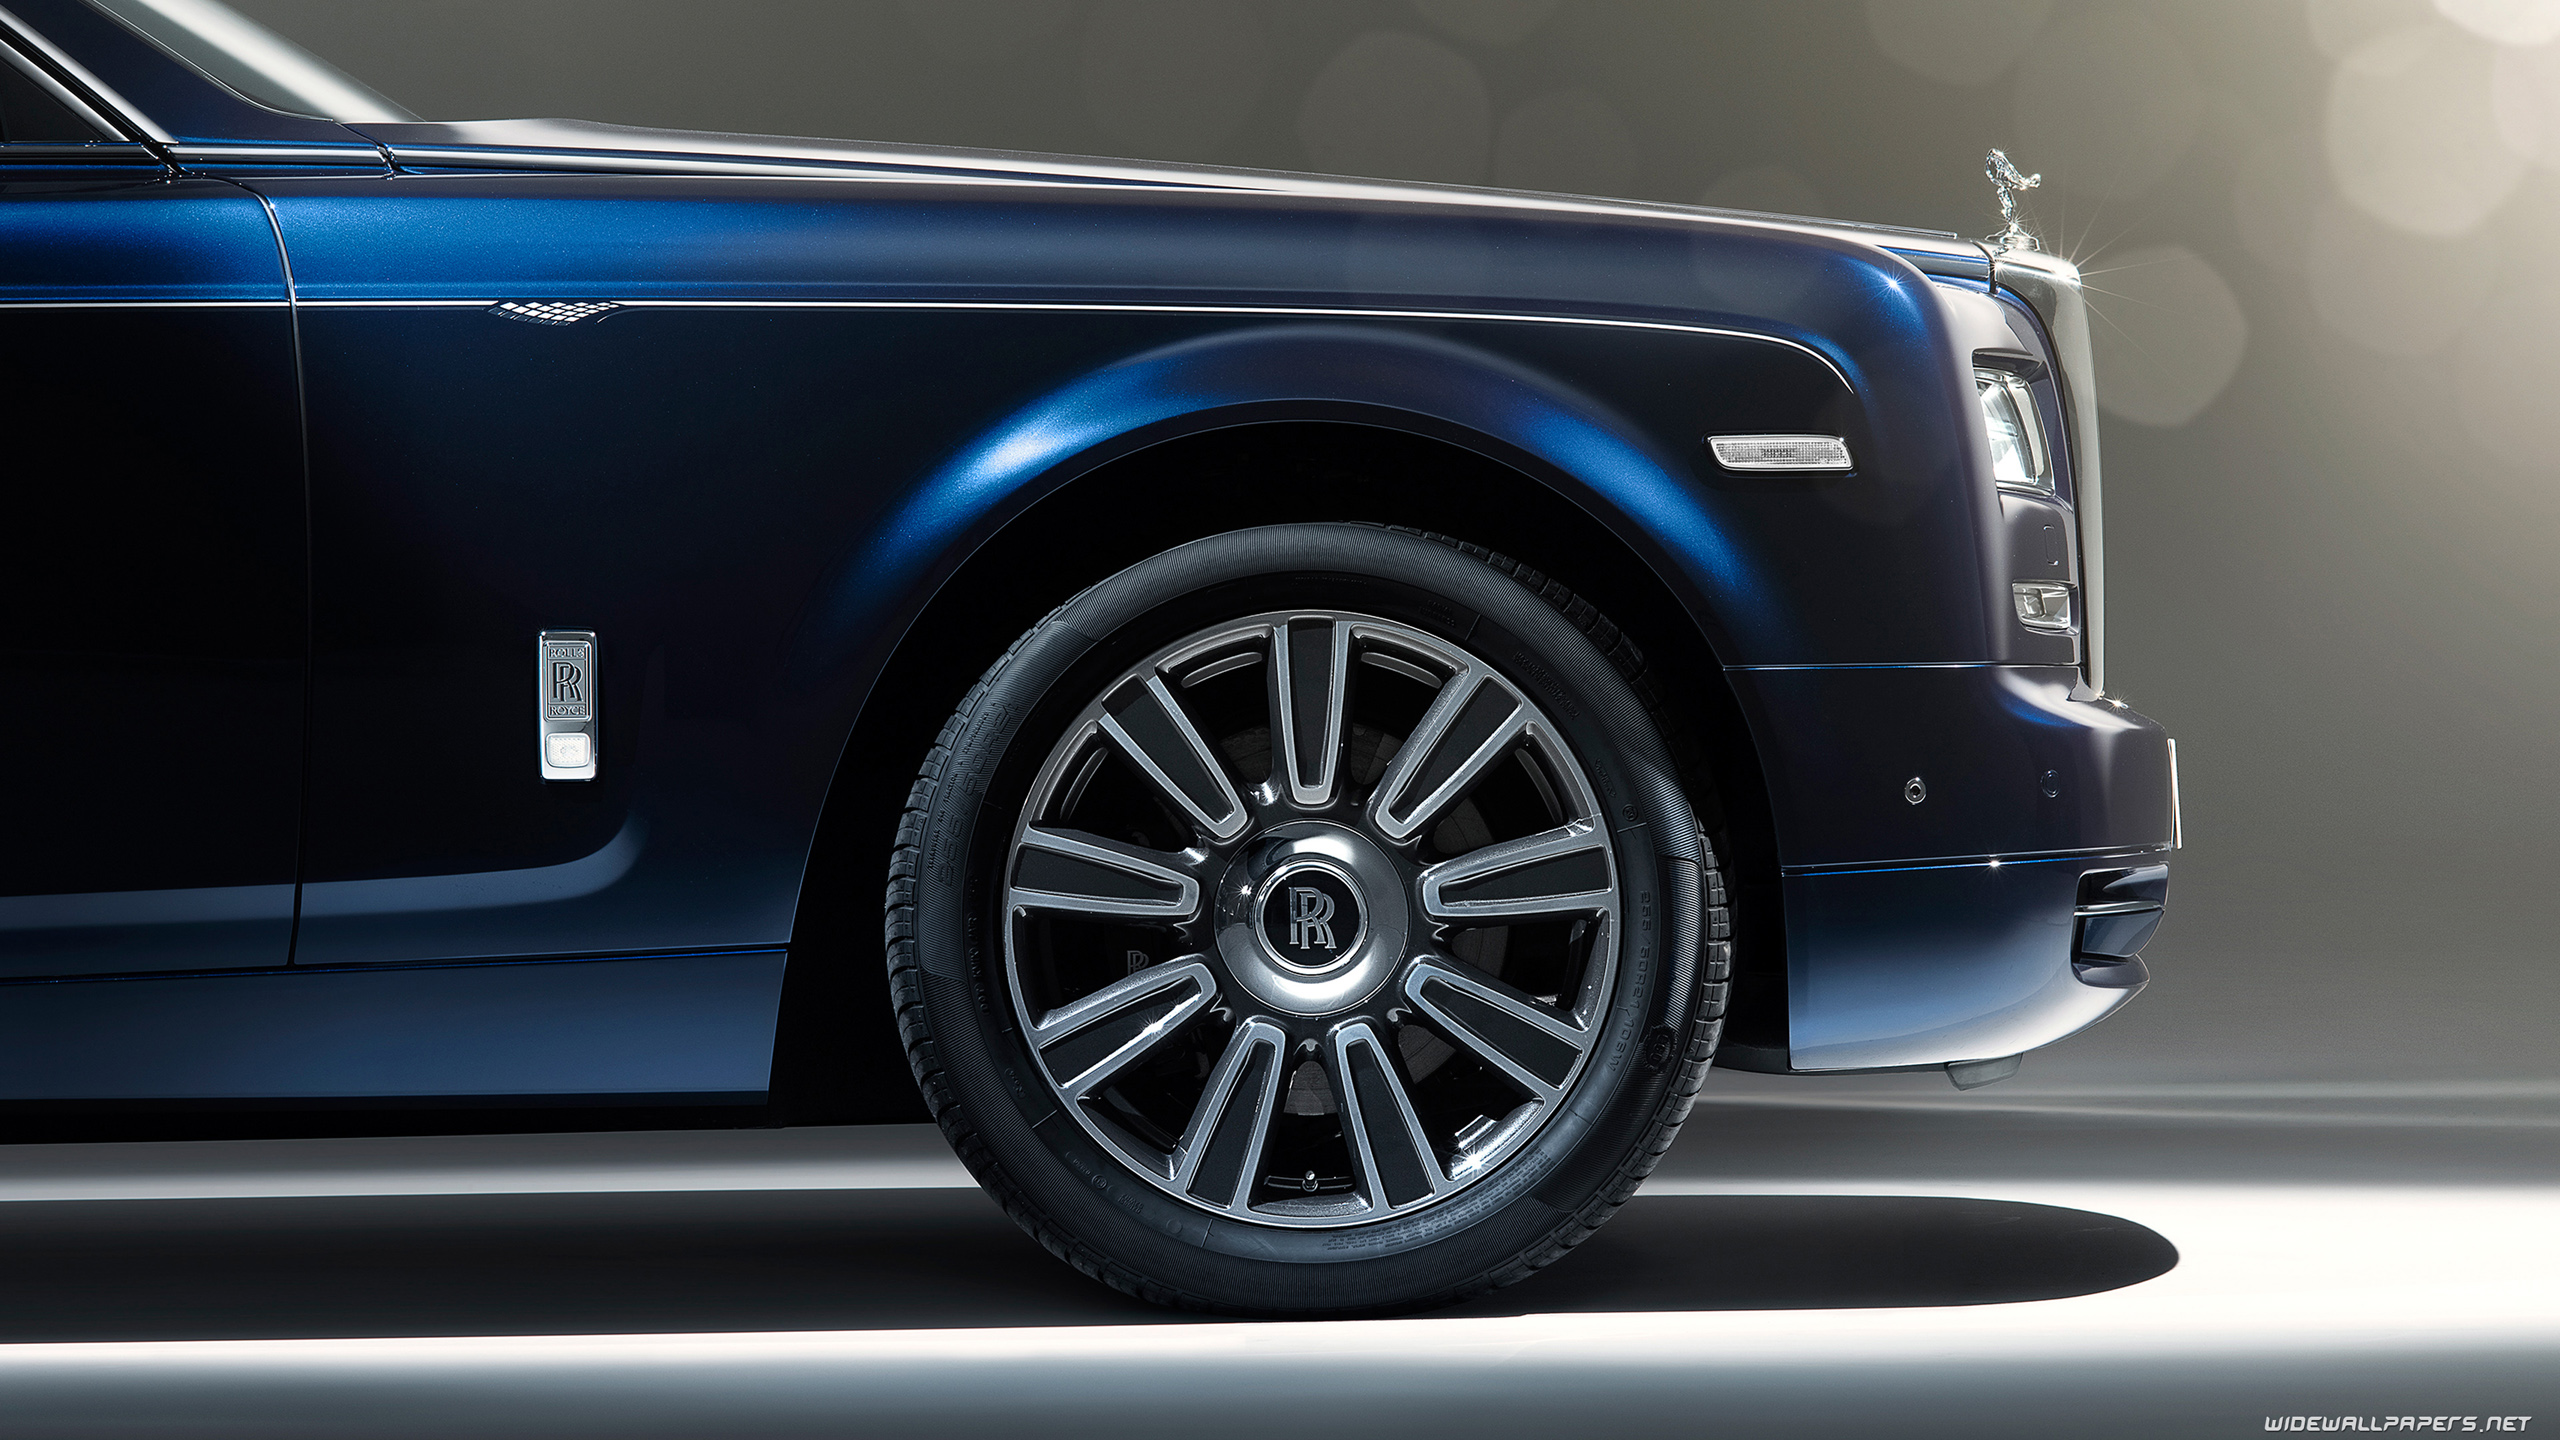 Image Result For Rolls Royce Cars Hd Wallpapers Free Download